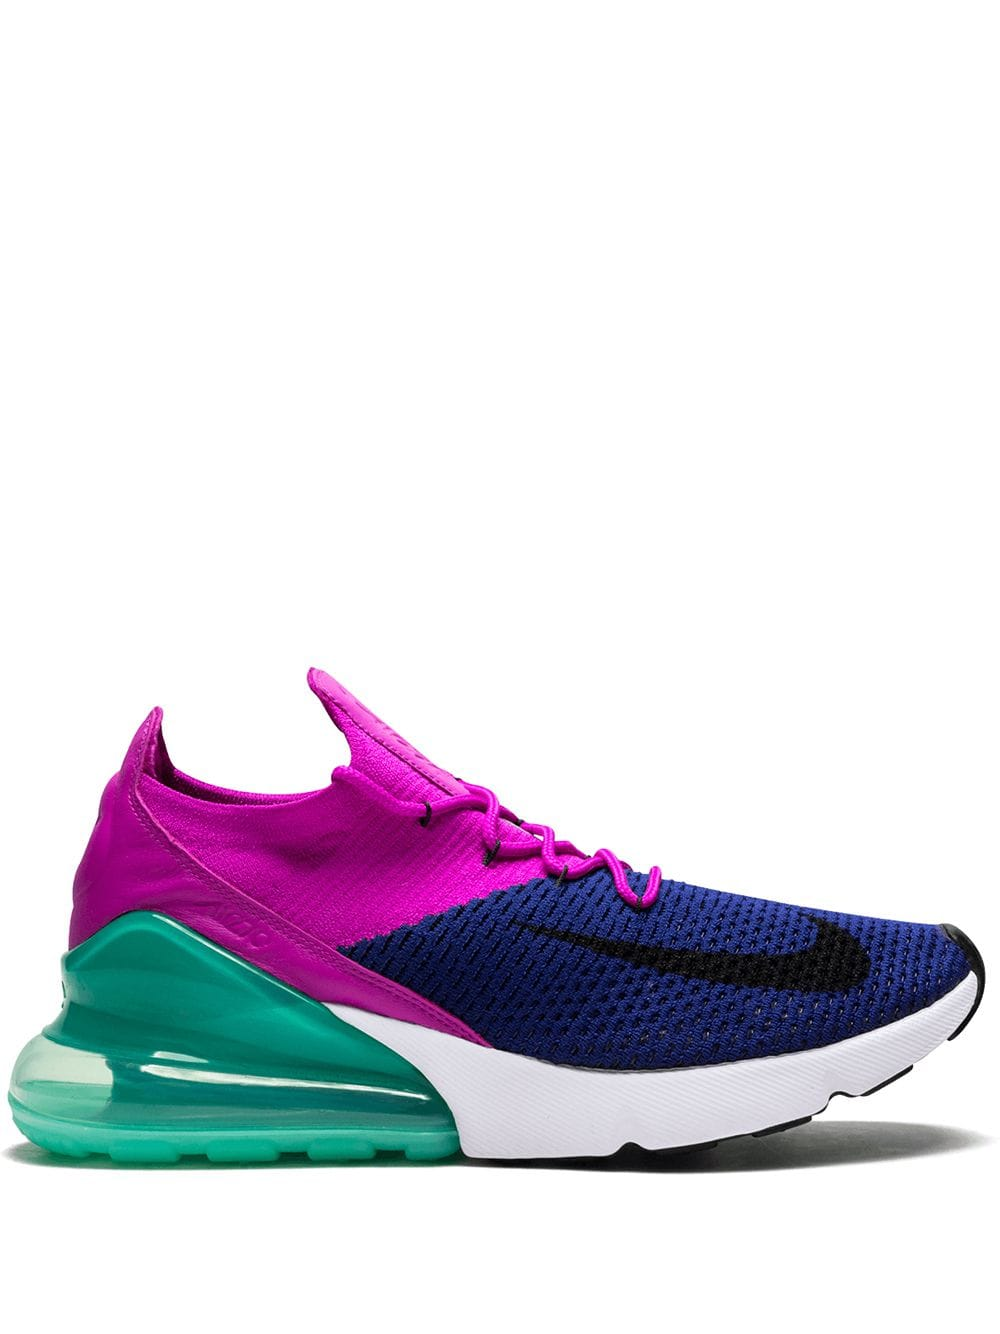 Nike Air Max 270 Flyknit Sneakers in 2019 | Products | Nike